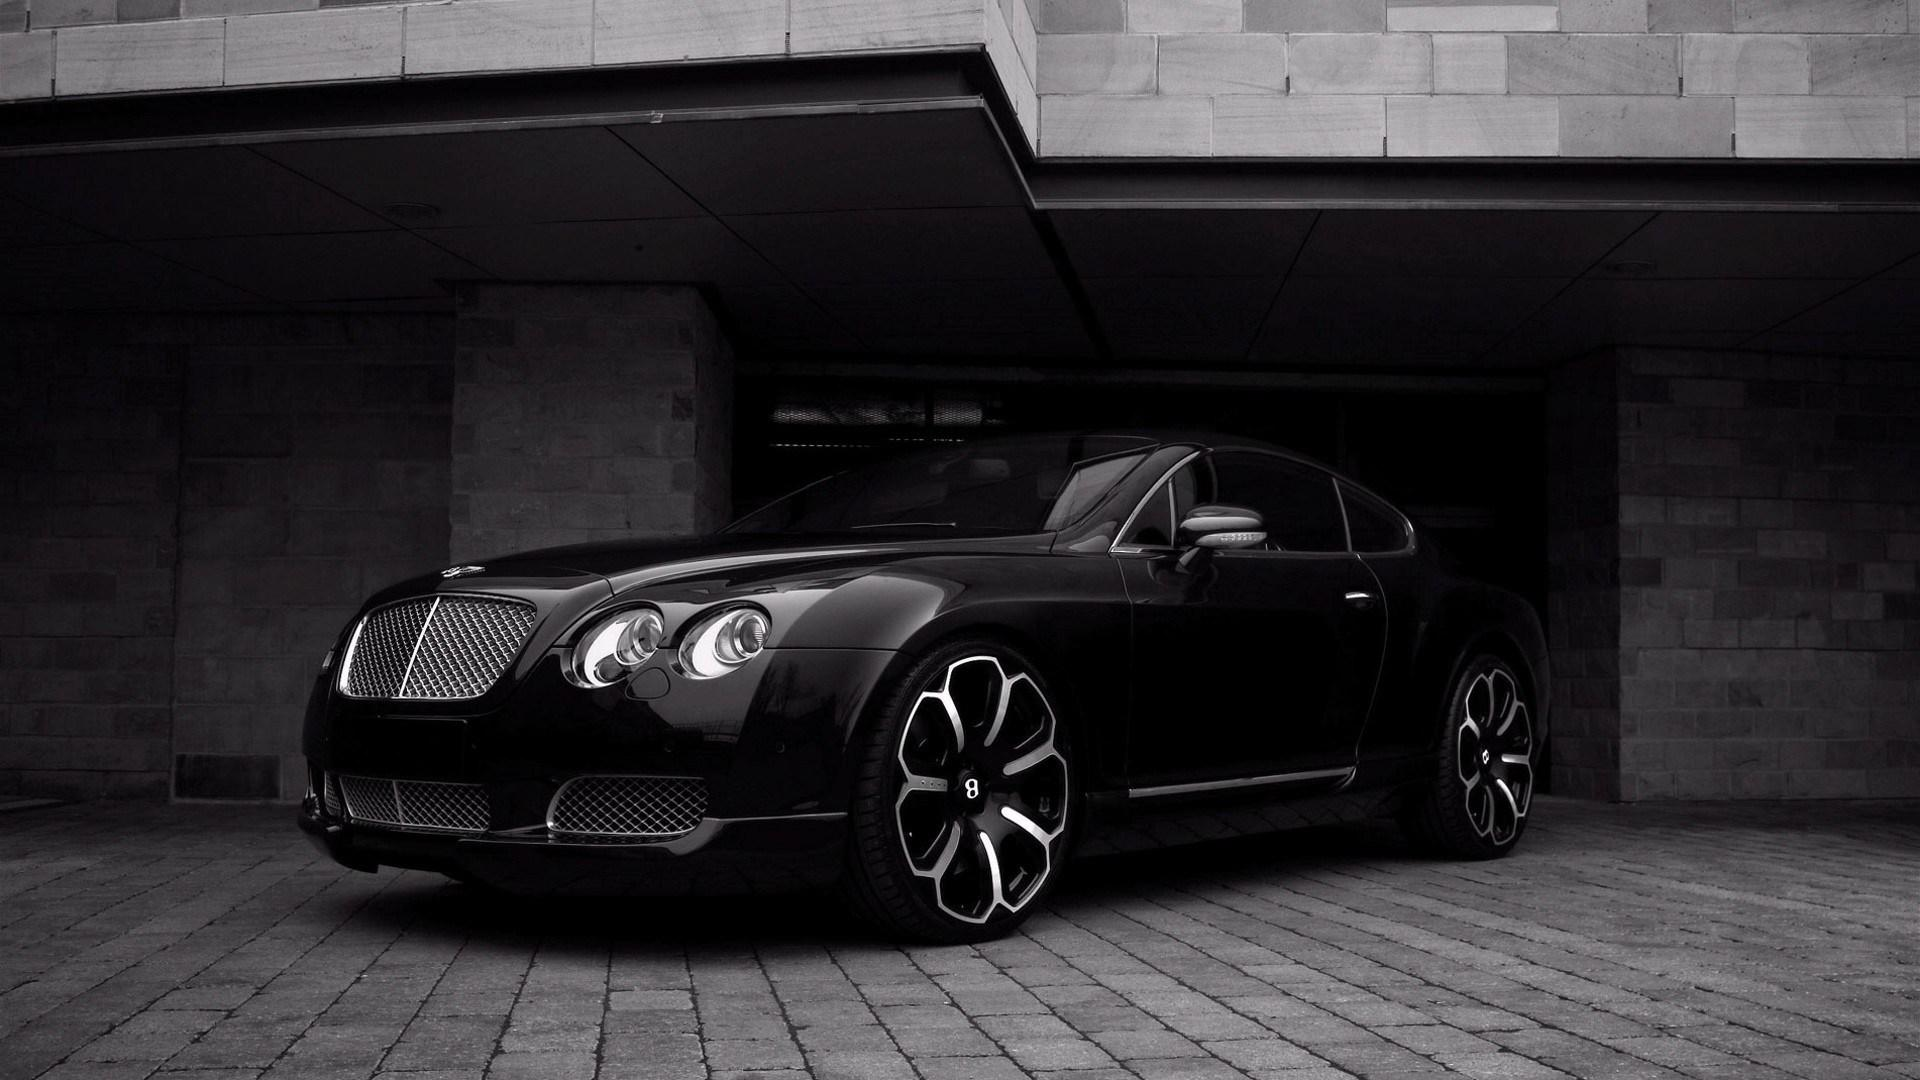 Latest Bentley Full Hd Wallpaper And Background Image 1920X1080 Free Download